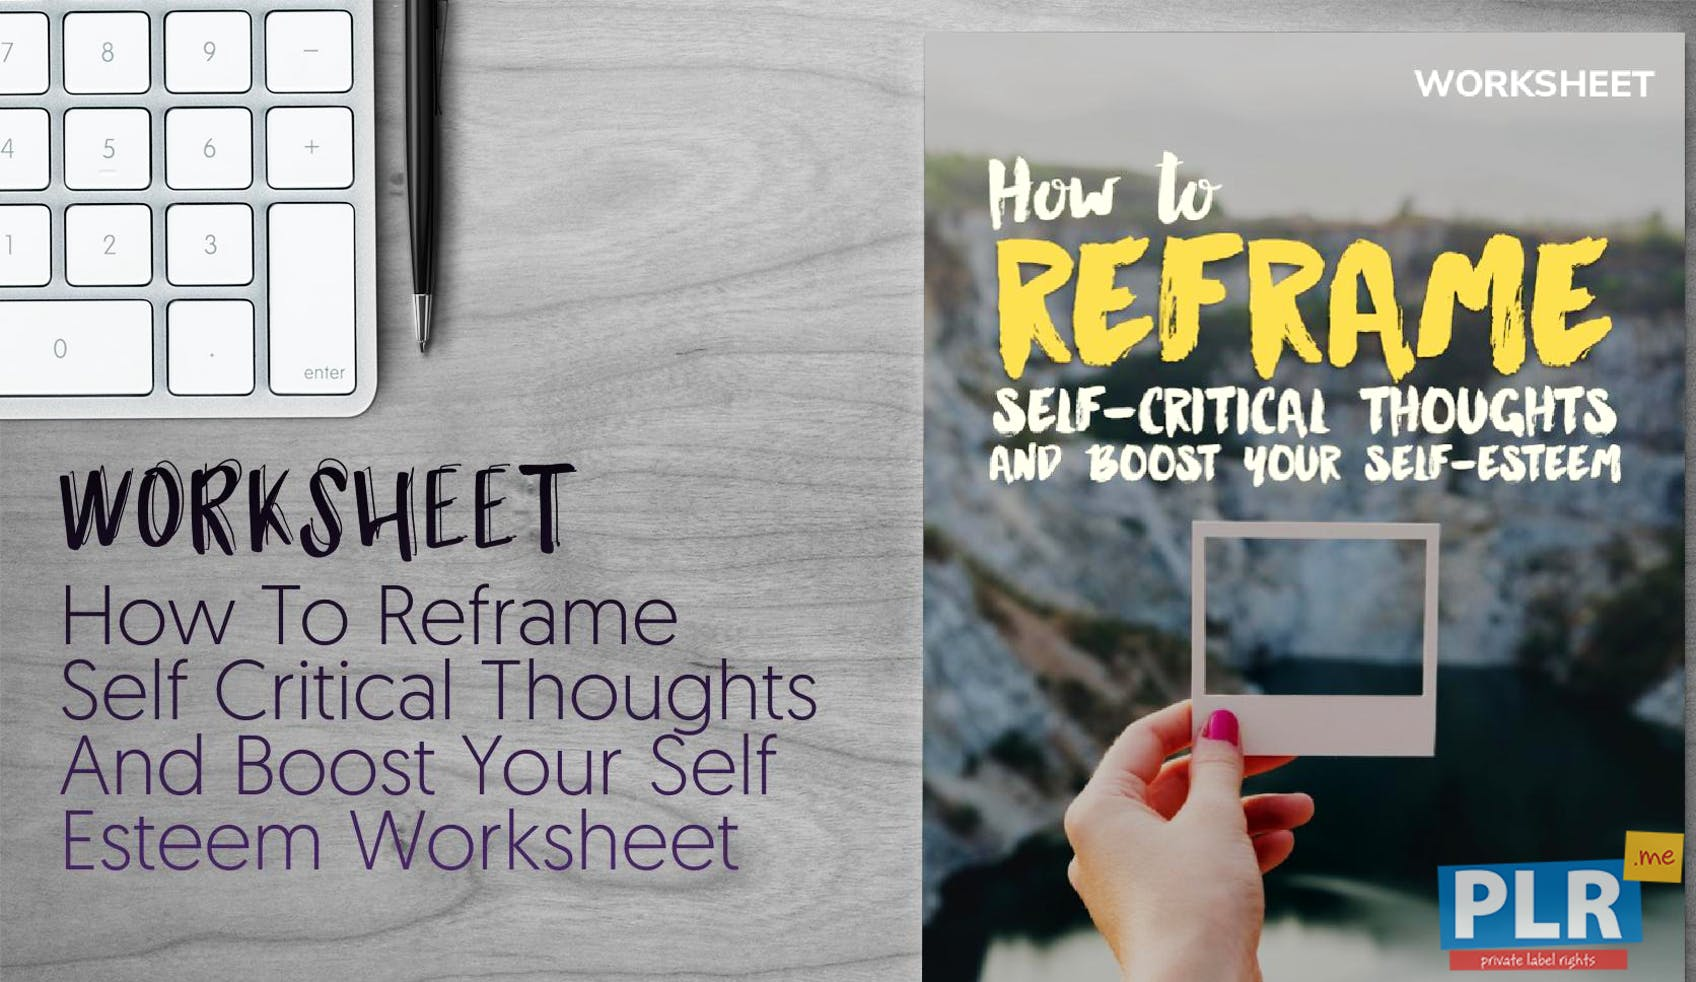 How To Reframe Self Critical Thoughts And Boost Your Self Esteem Worksheet